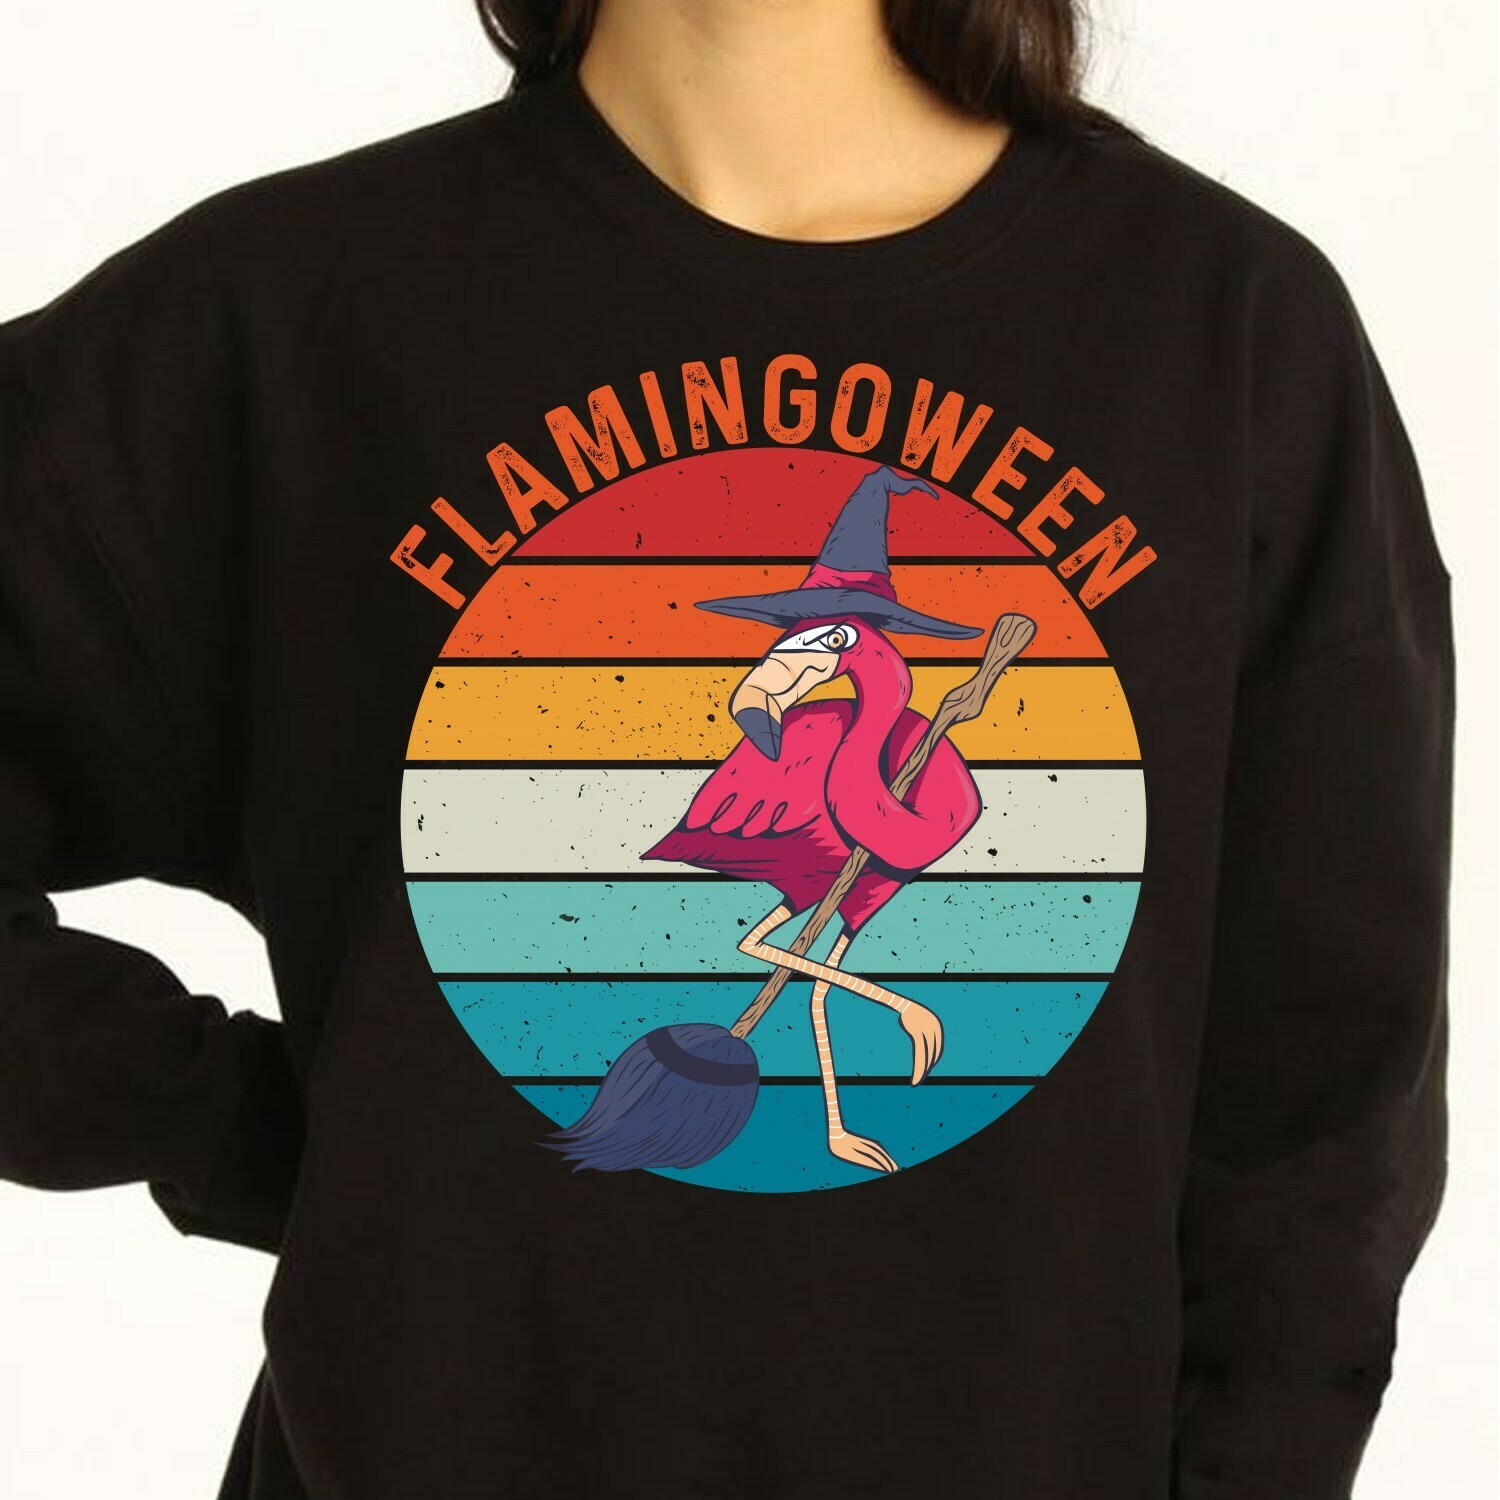 Flamingoween Witch Flamingo Vintage Not So Scary Gift for Lovers Halloween Day Women Grandma Mother Family Vacation Team Party Gifts T-Shirt Long Sleeve Sweatshirt Hoodie Jolly Family Gifts